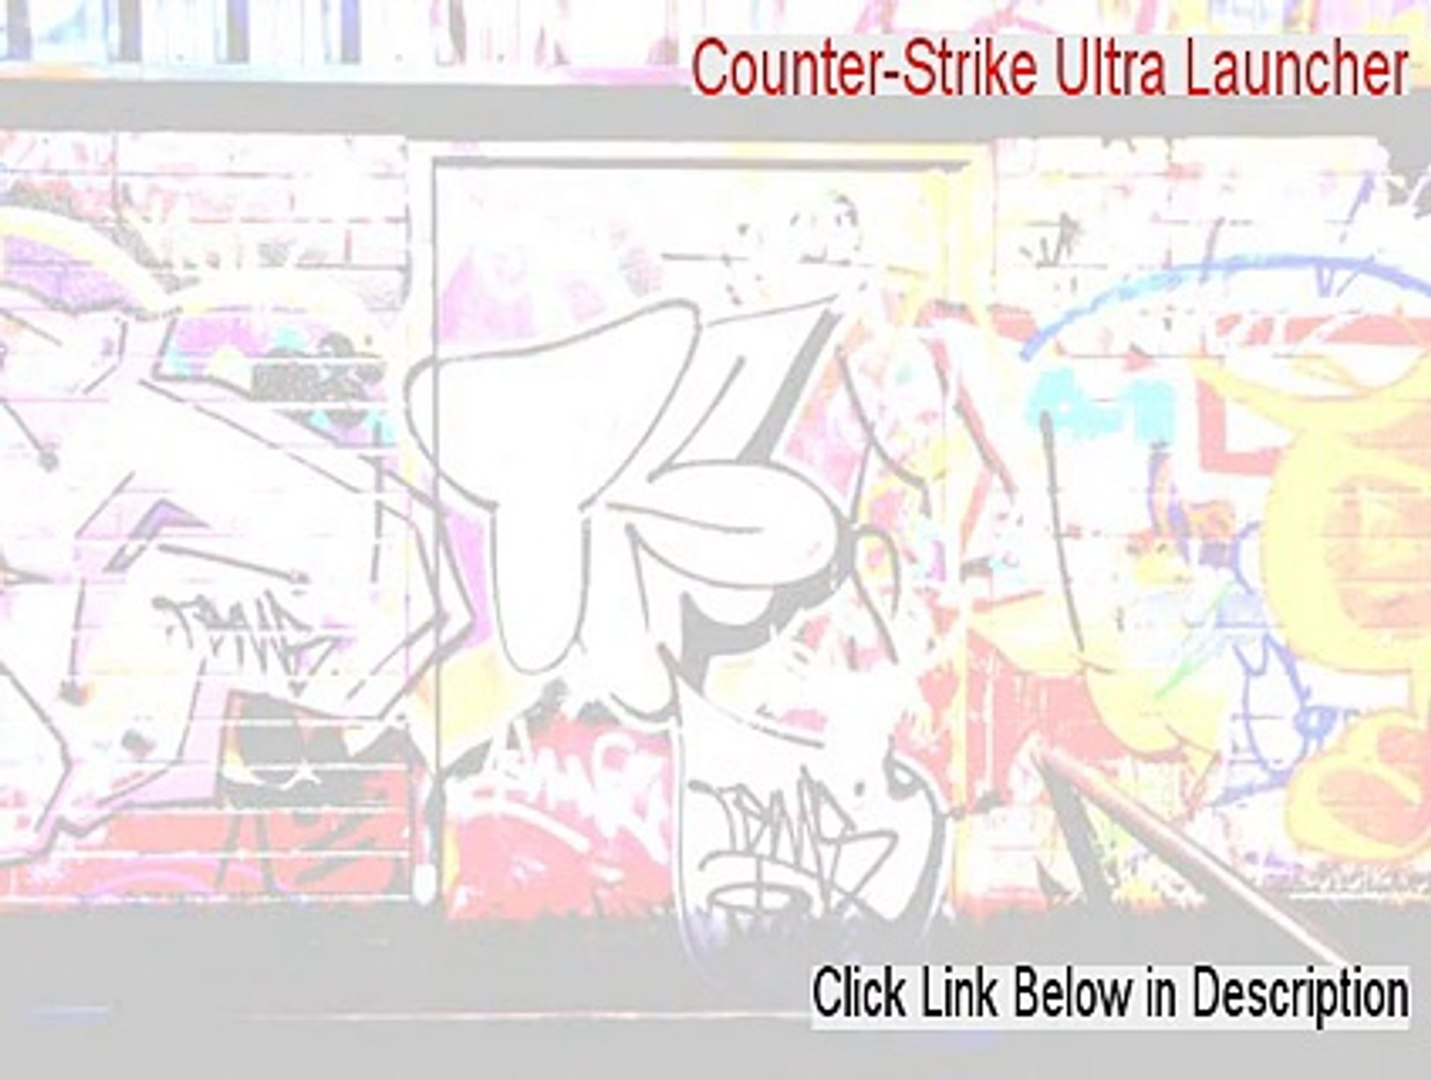 Counter-Strike Ultra Launcher Full Download [Counter-Strike Ultra Launchercounter-strike ultra launc